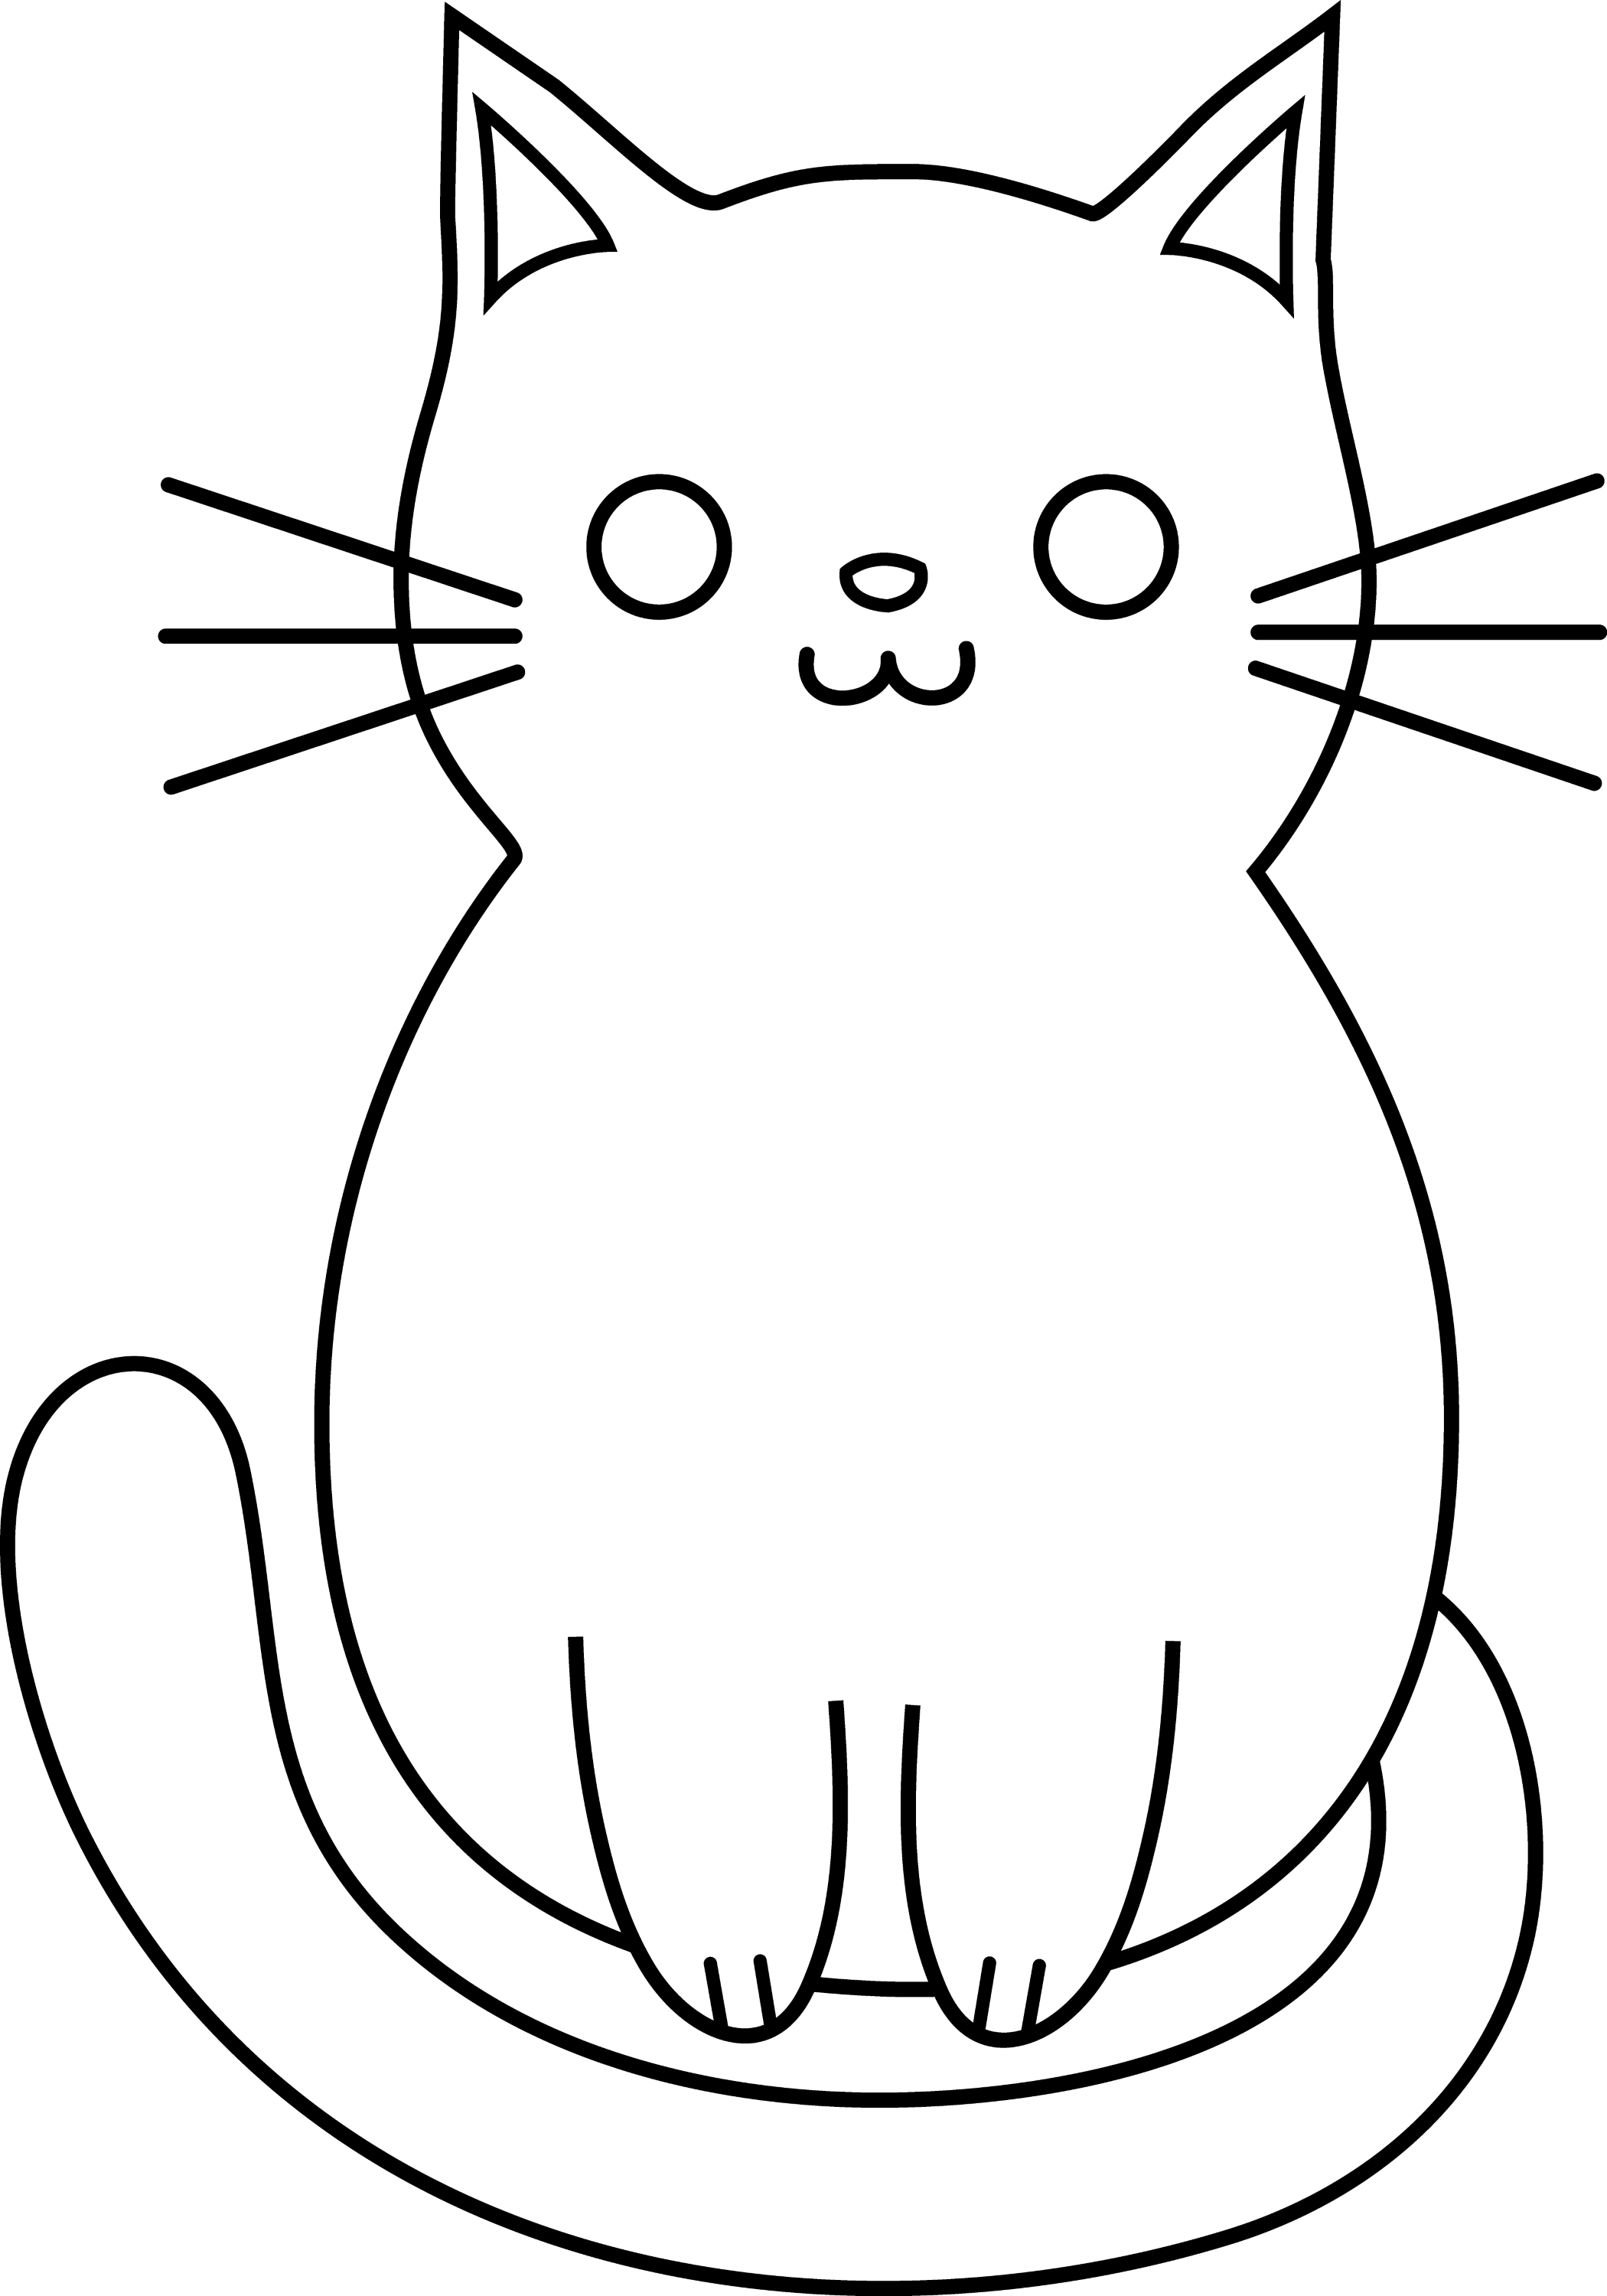 Line Drawing Kitten : Cute cat line art free clip